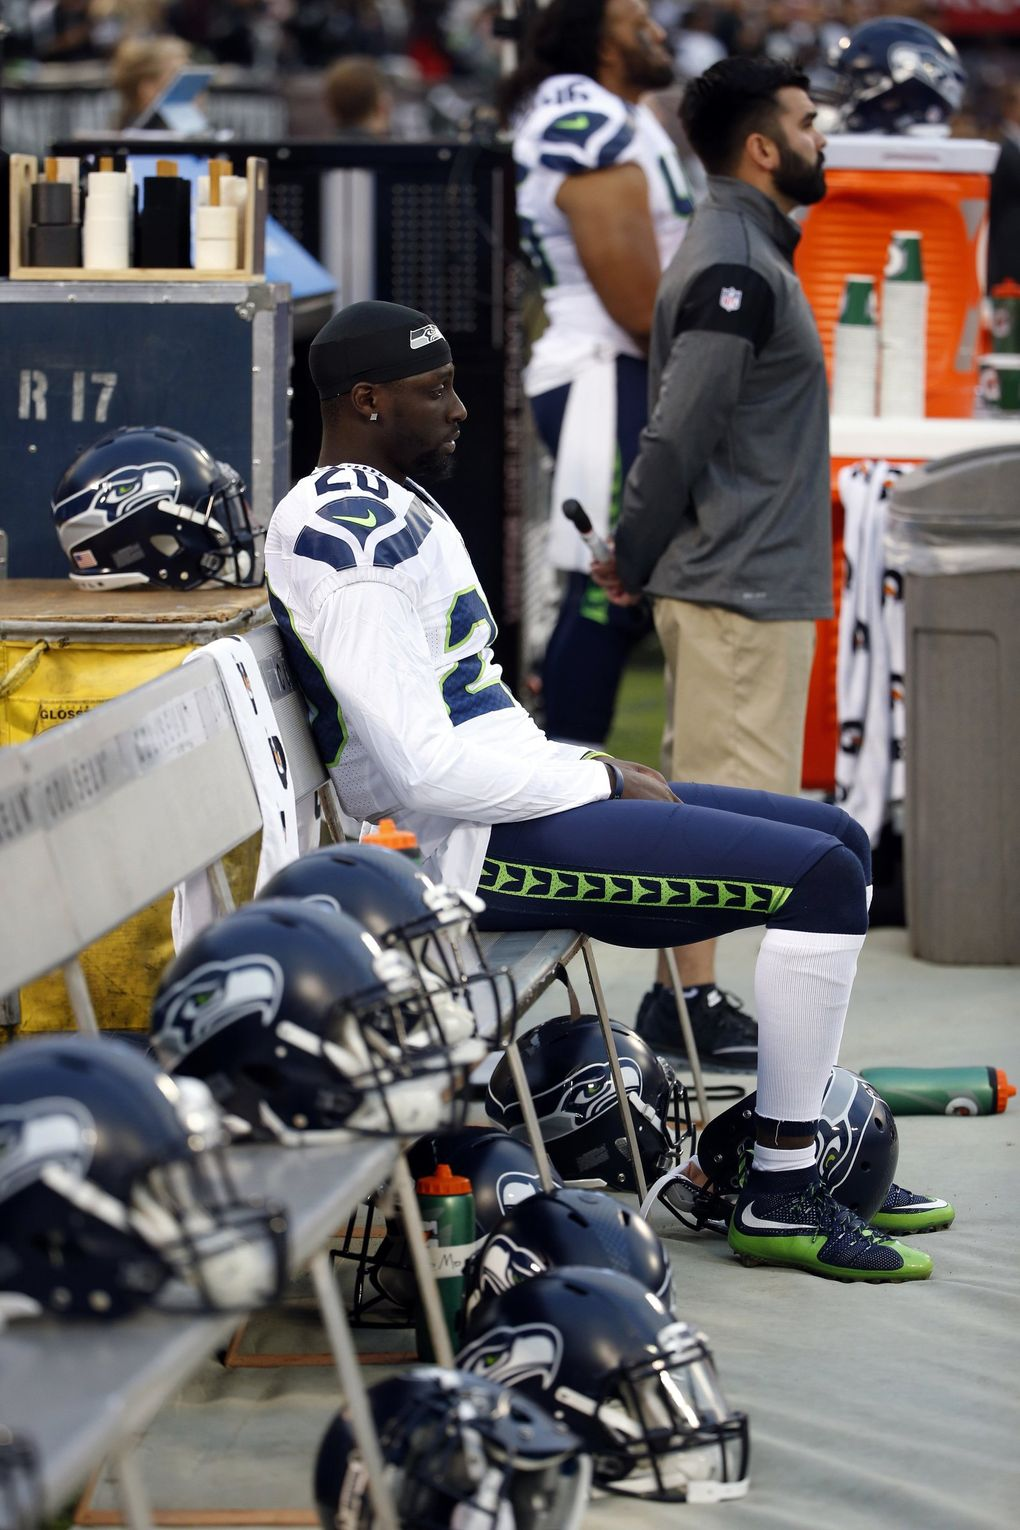 Seahawks cornerback Jeremy Lane sits as the national anthem plays before a preseason game against the Raiders on Thursday in Oakland. (Tony Avelar / AP)